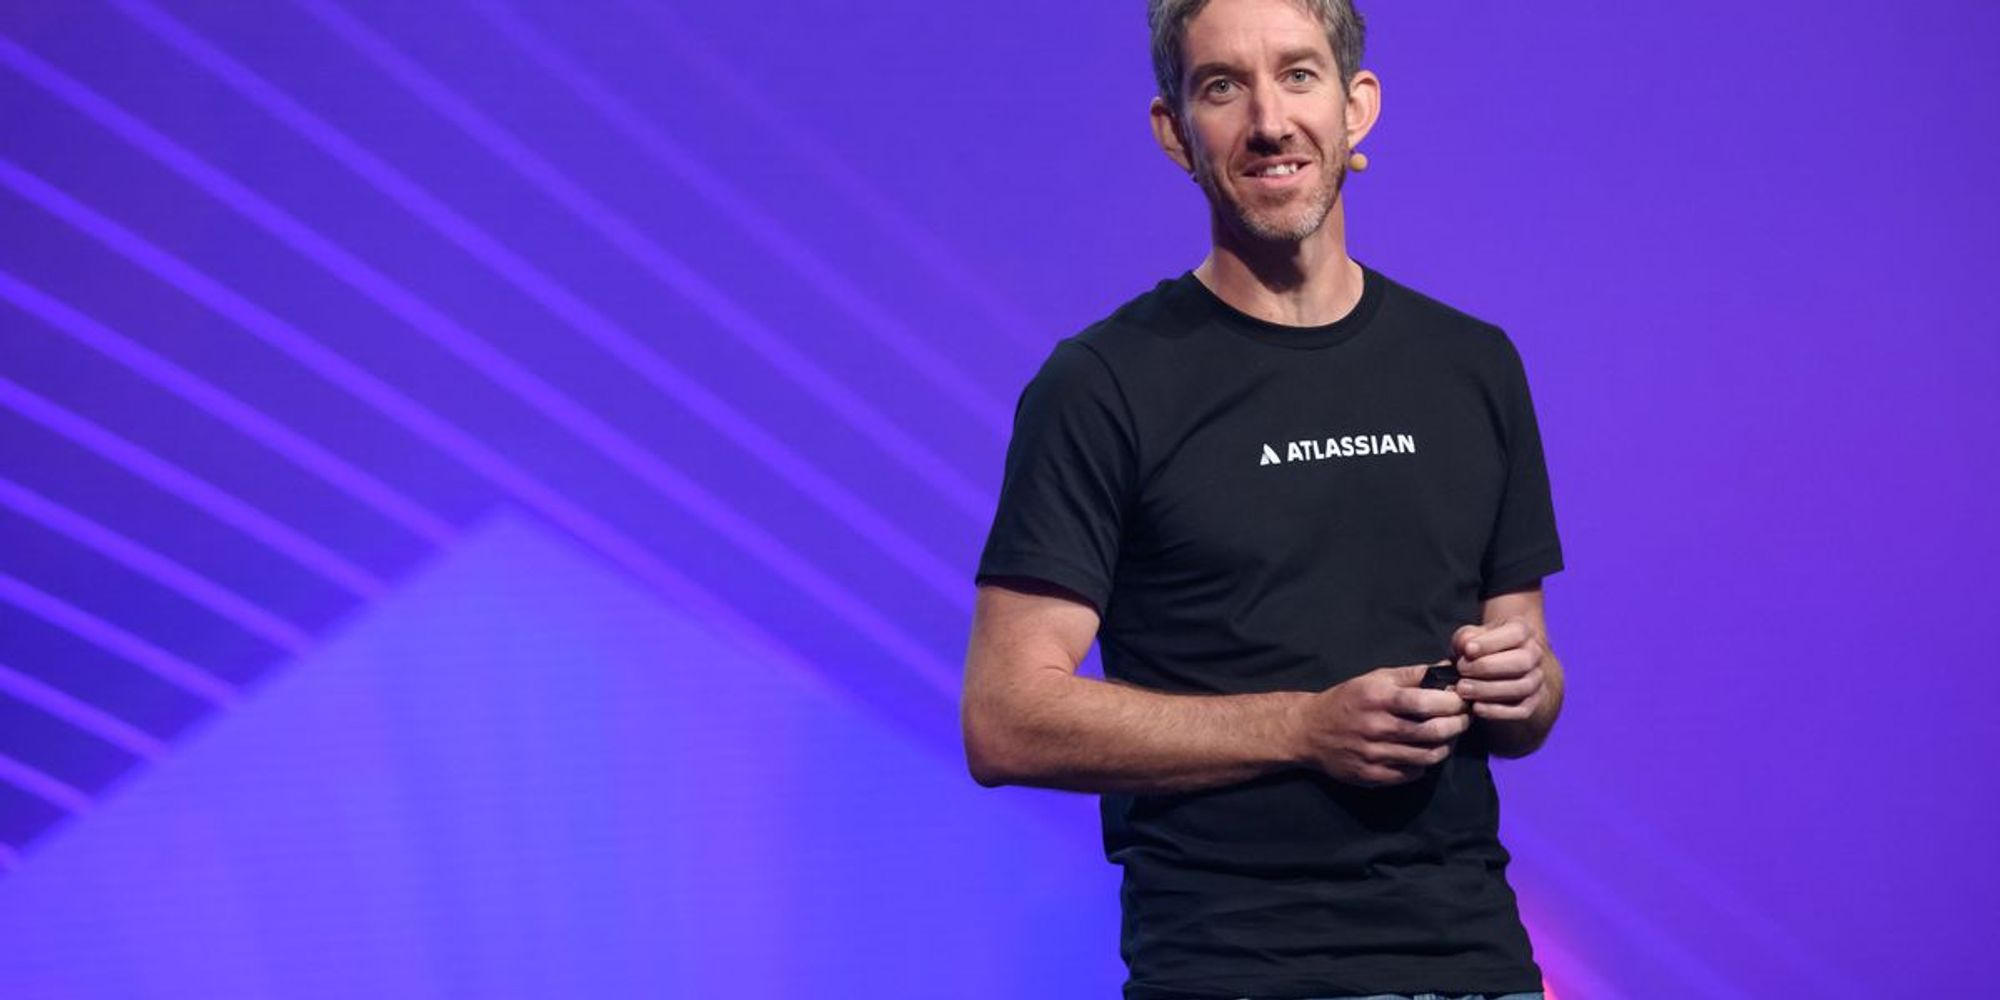 Atlassian's tools helped build today's tech. How's it prepping for the future?